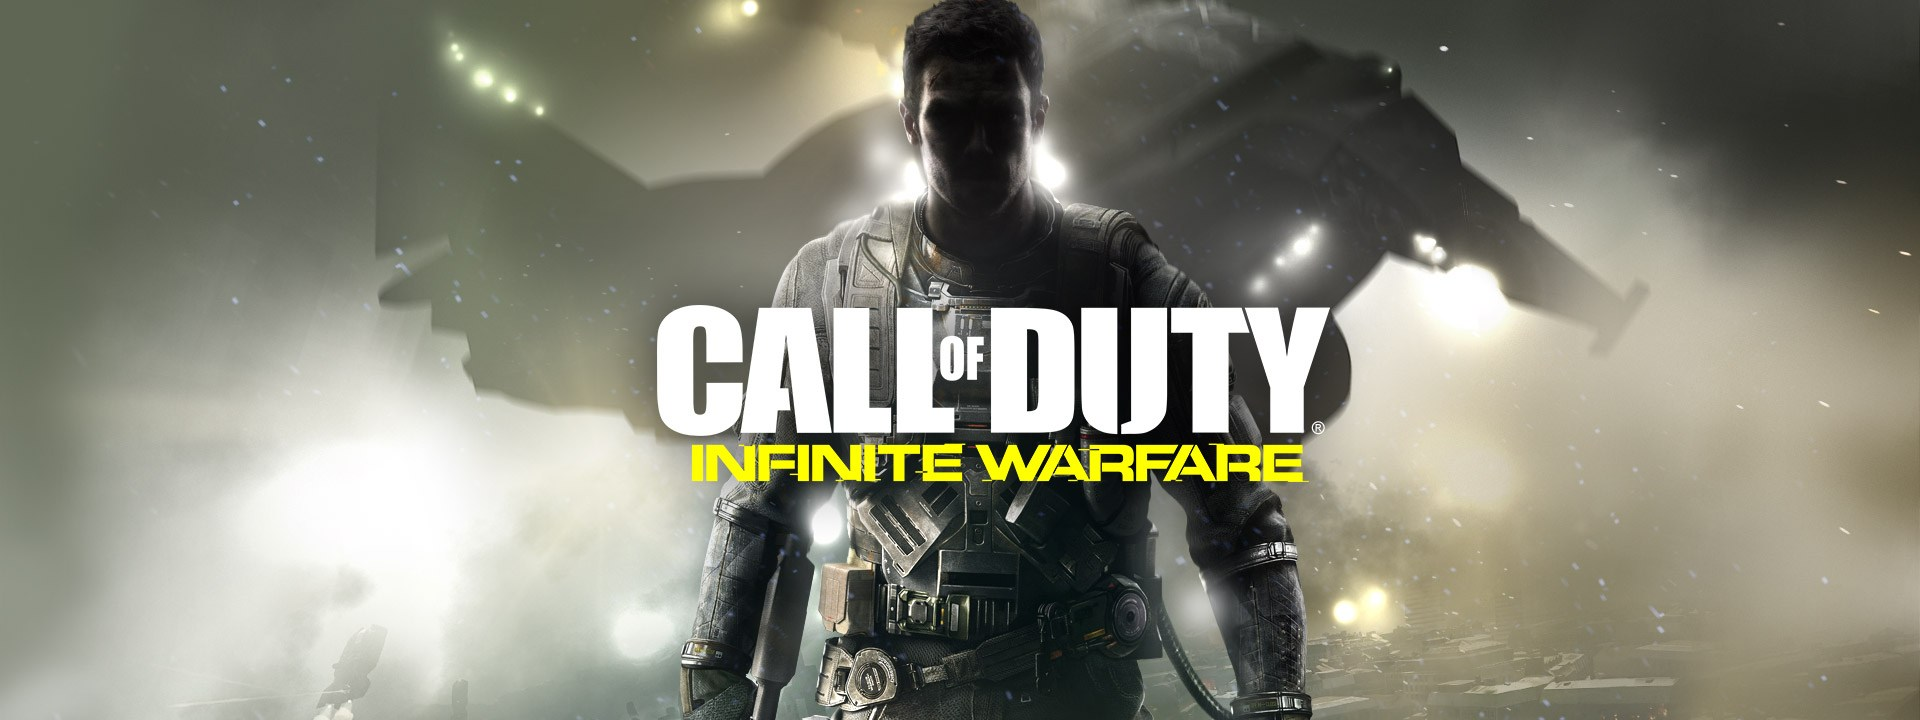 Jon Snow'lu Call of Duty Fragmanı !